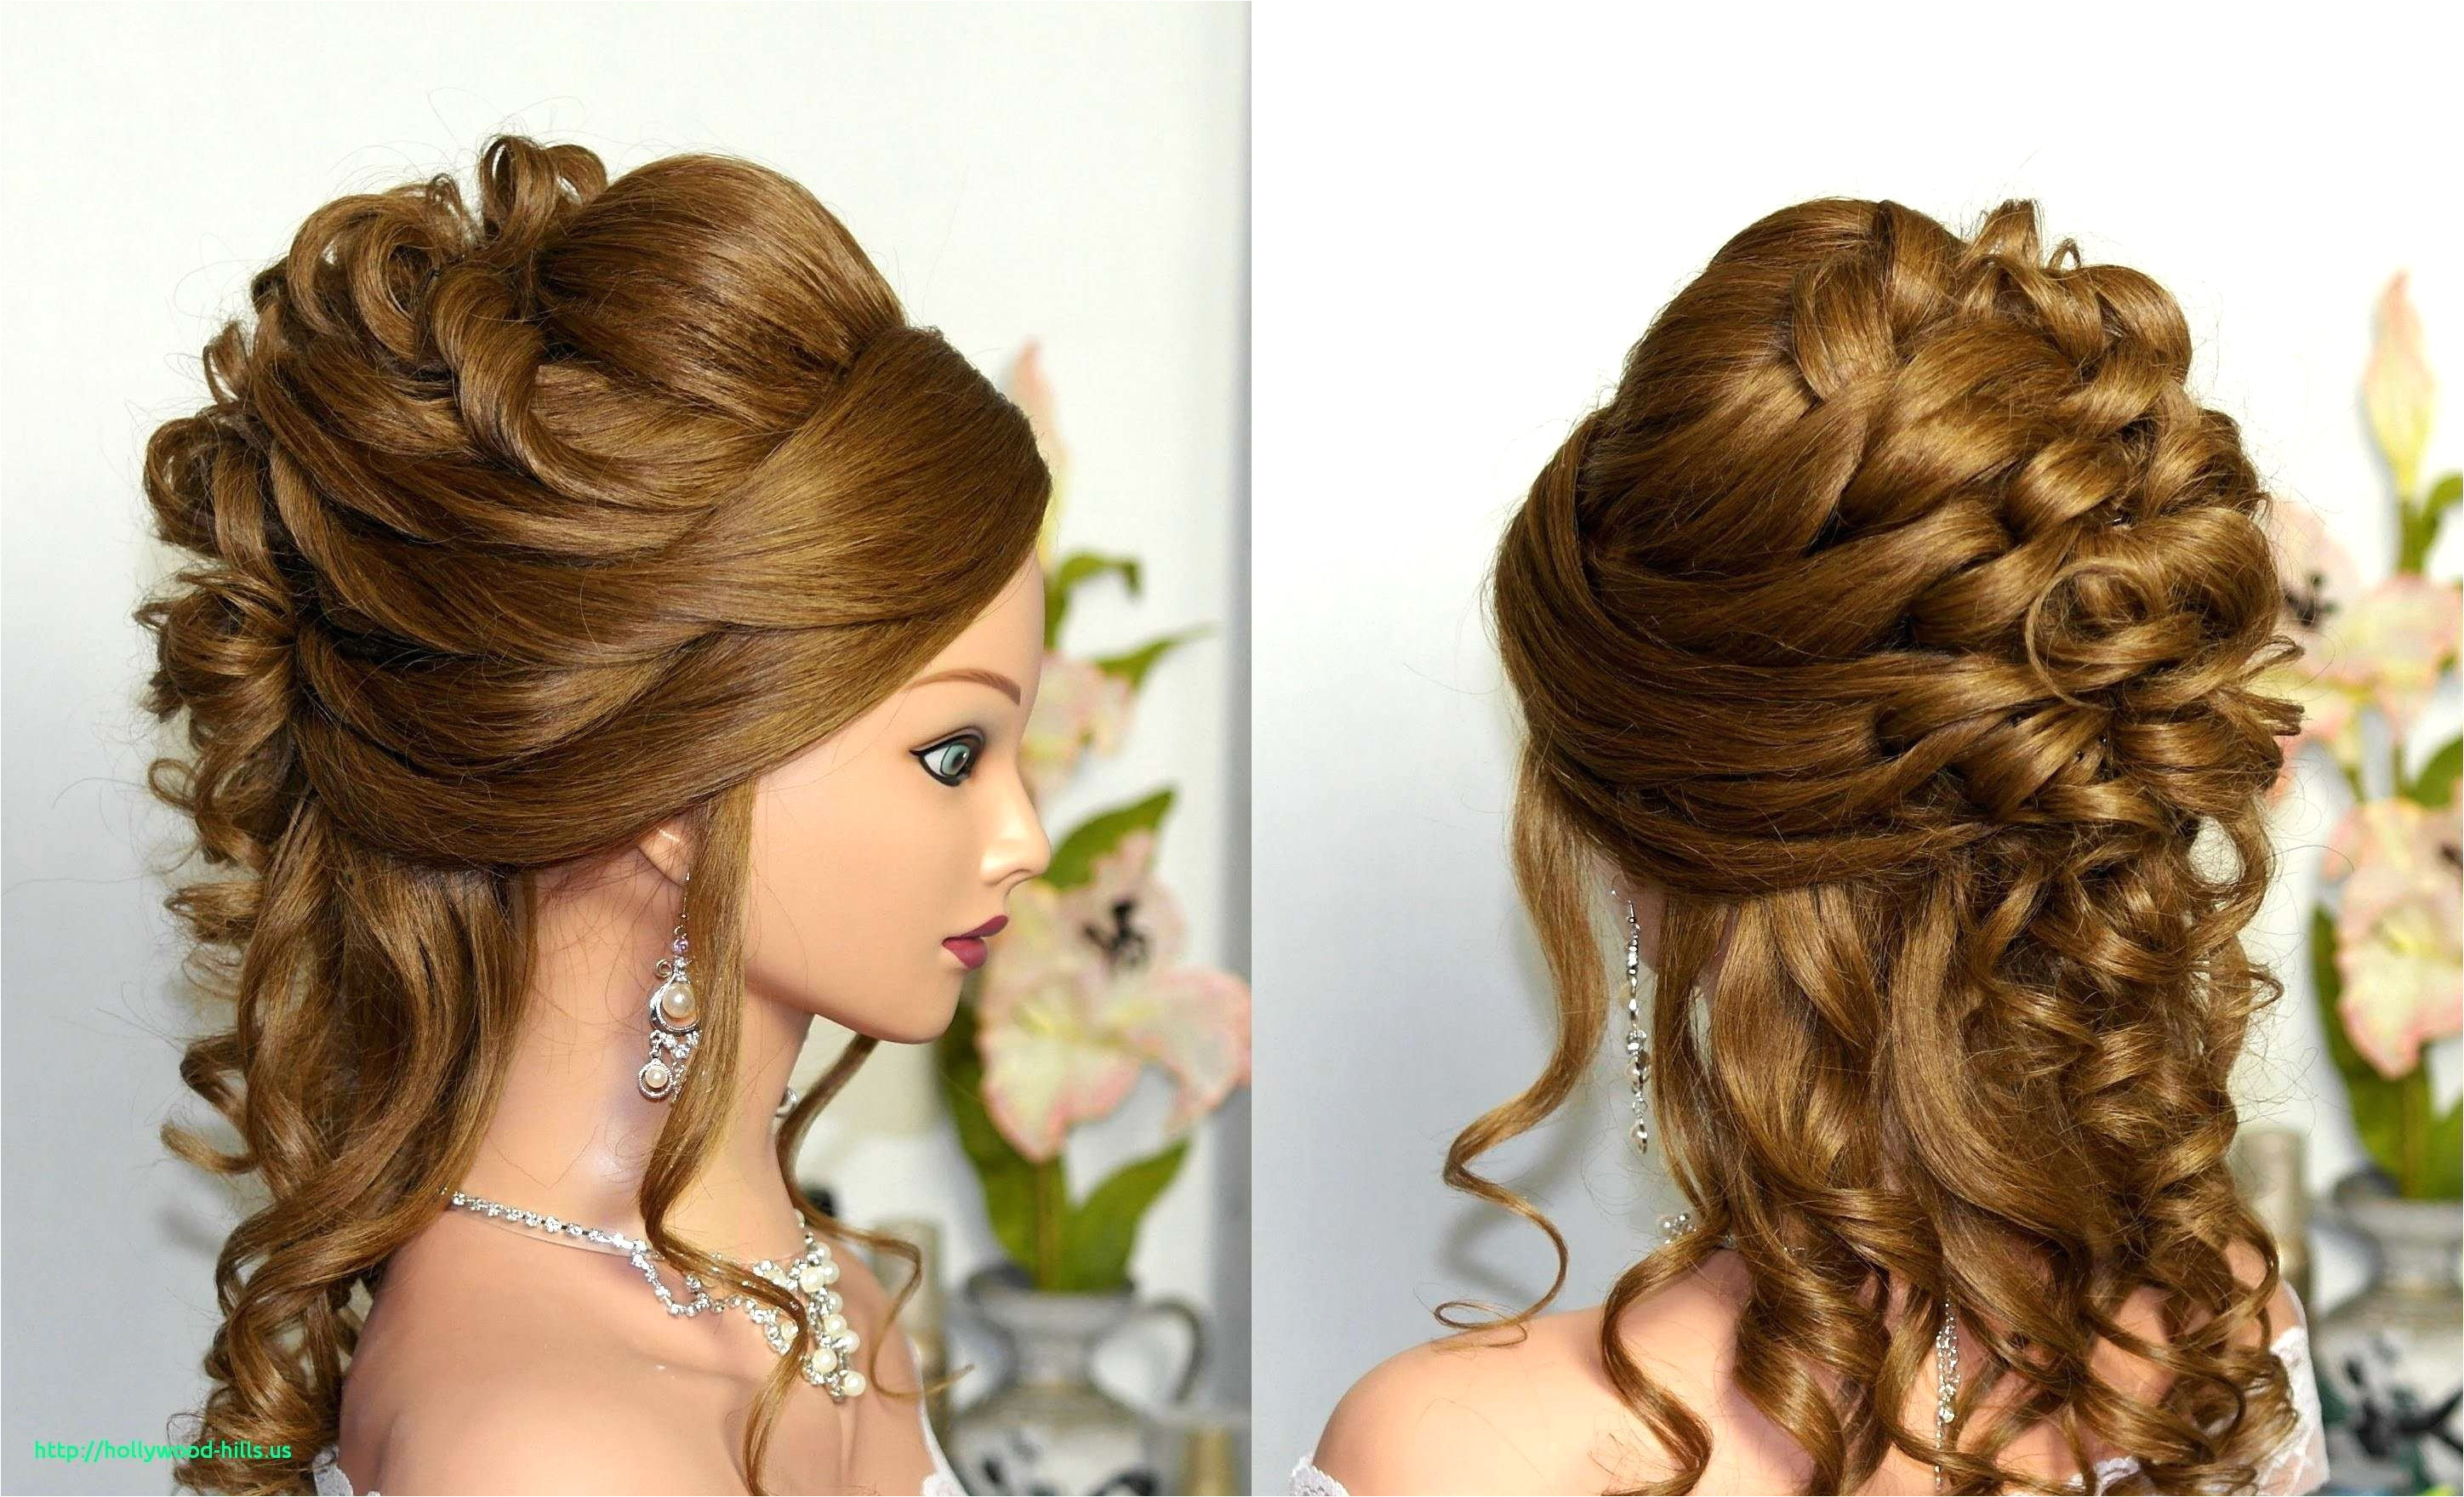 Cute Girls Hairstyles Buns Beautiful Cute Hairstyles for Frizzy Hair Awesome Unique Ram New Hairstyle